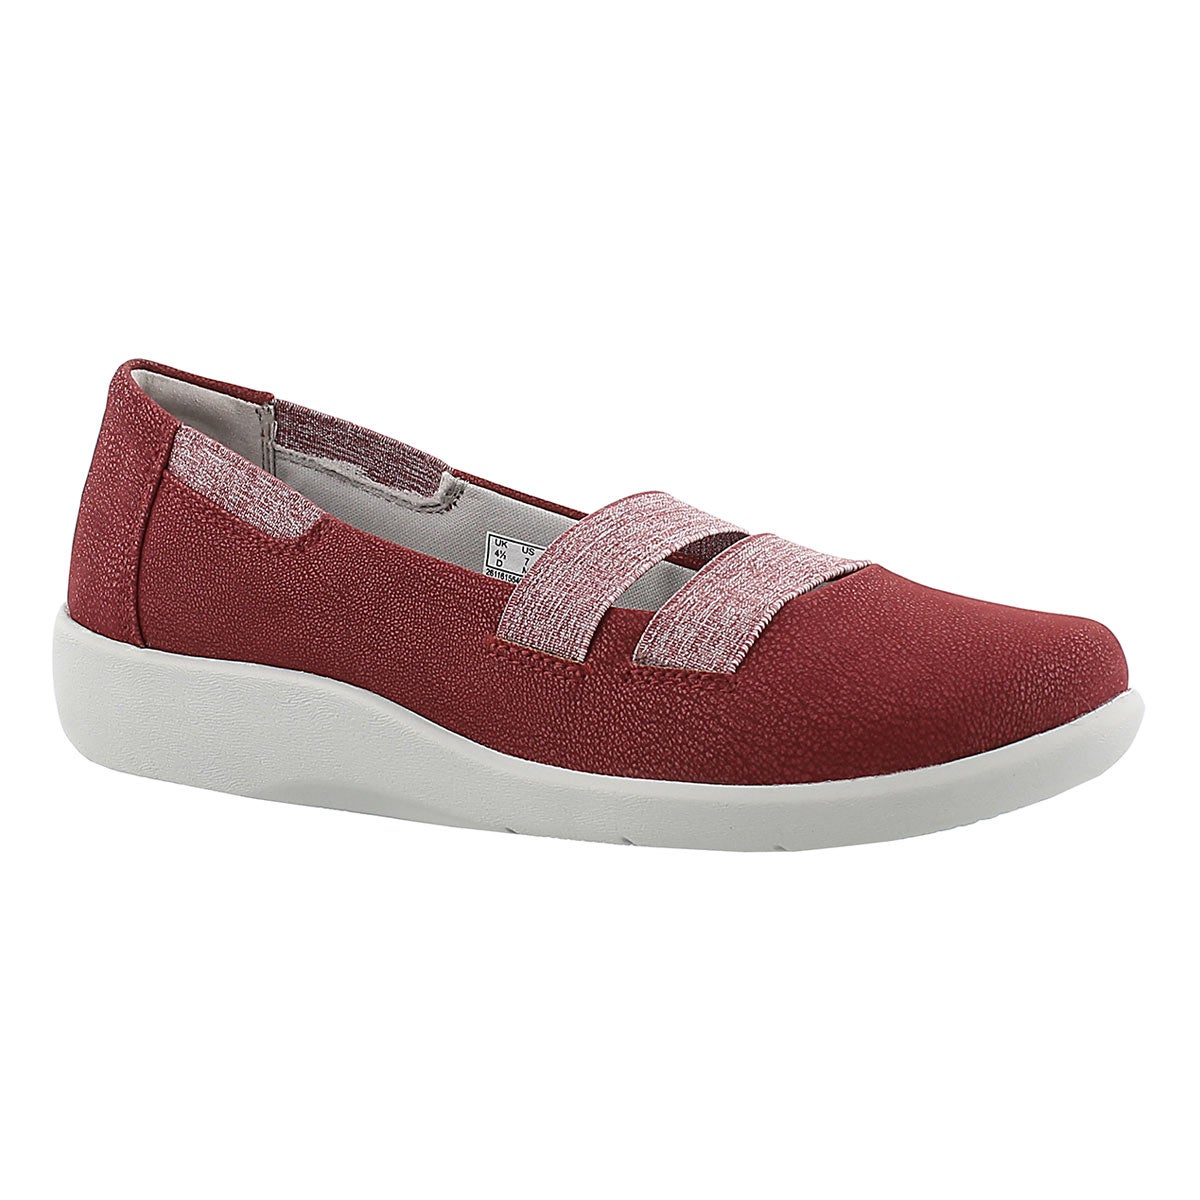 Women's SILLIAN REST red  slip on casual shoes